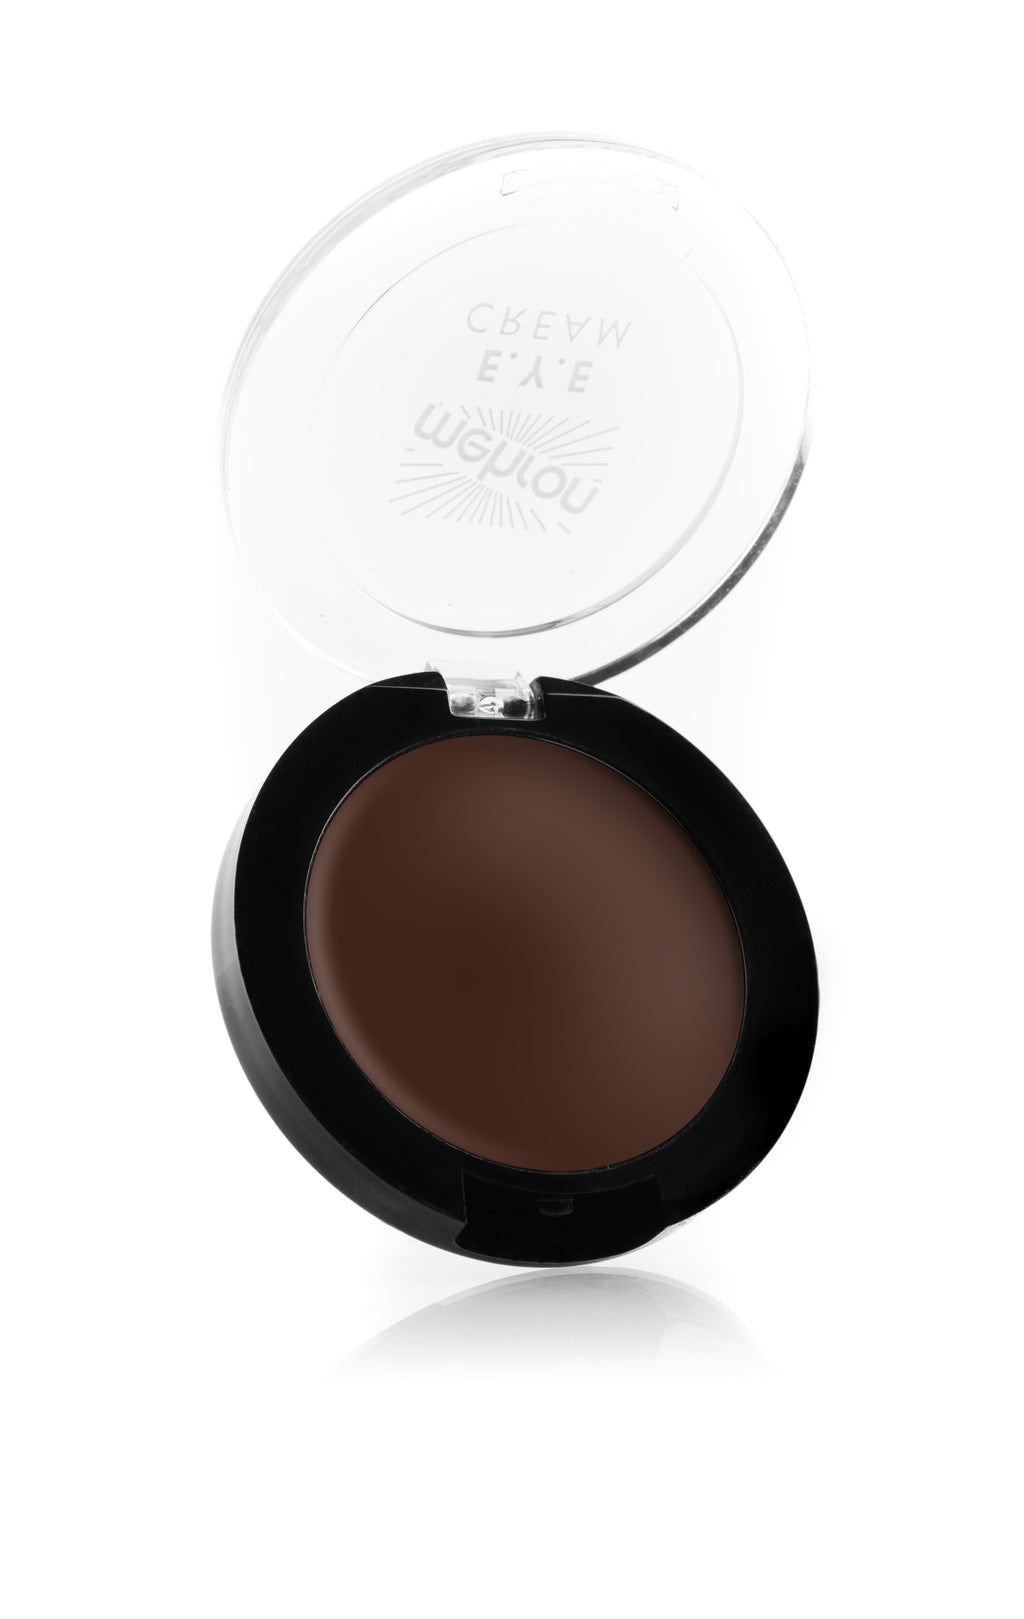 Mehron Eye Cream 107-8.5 (Chestnut brown)